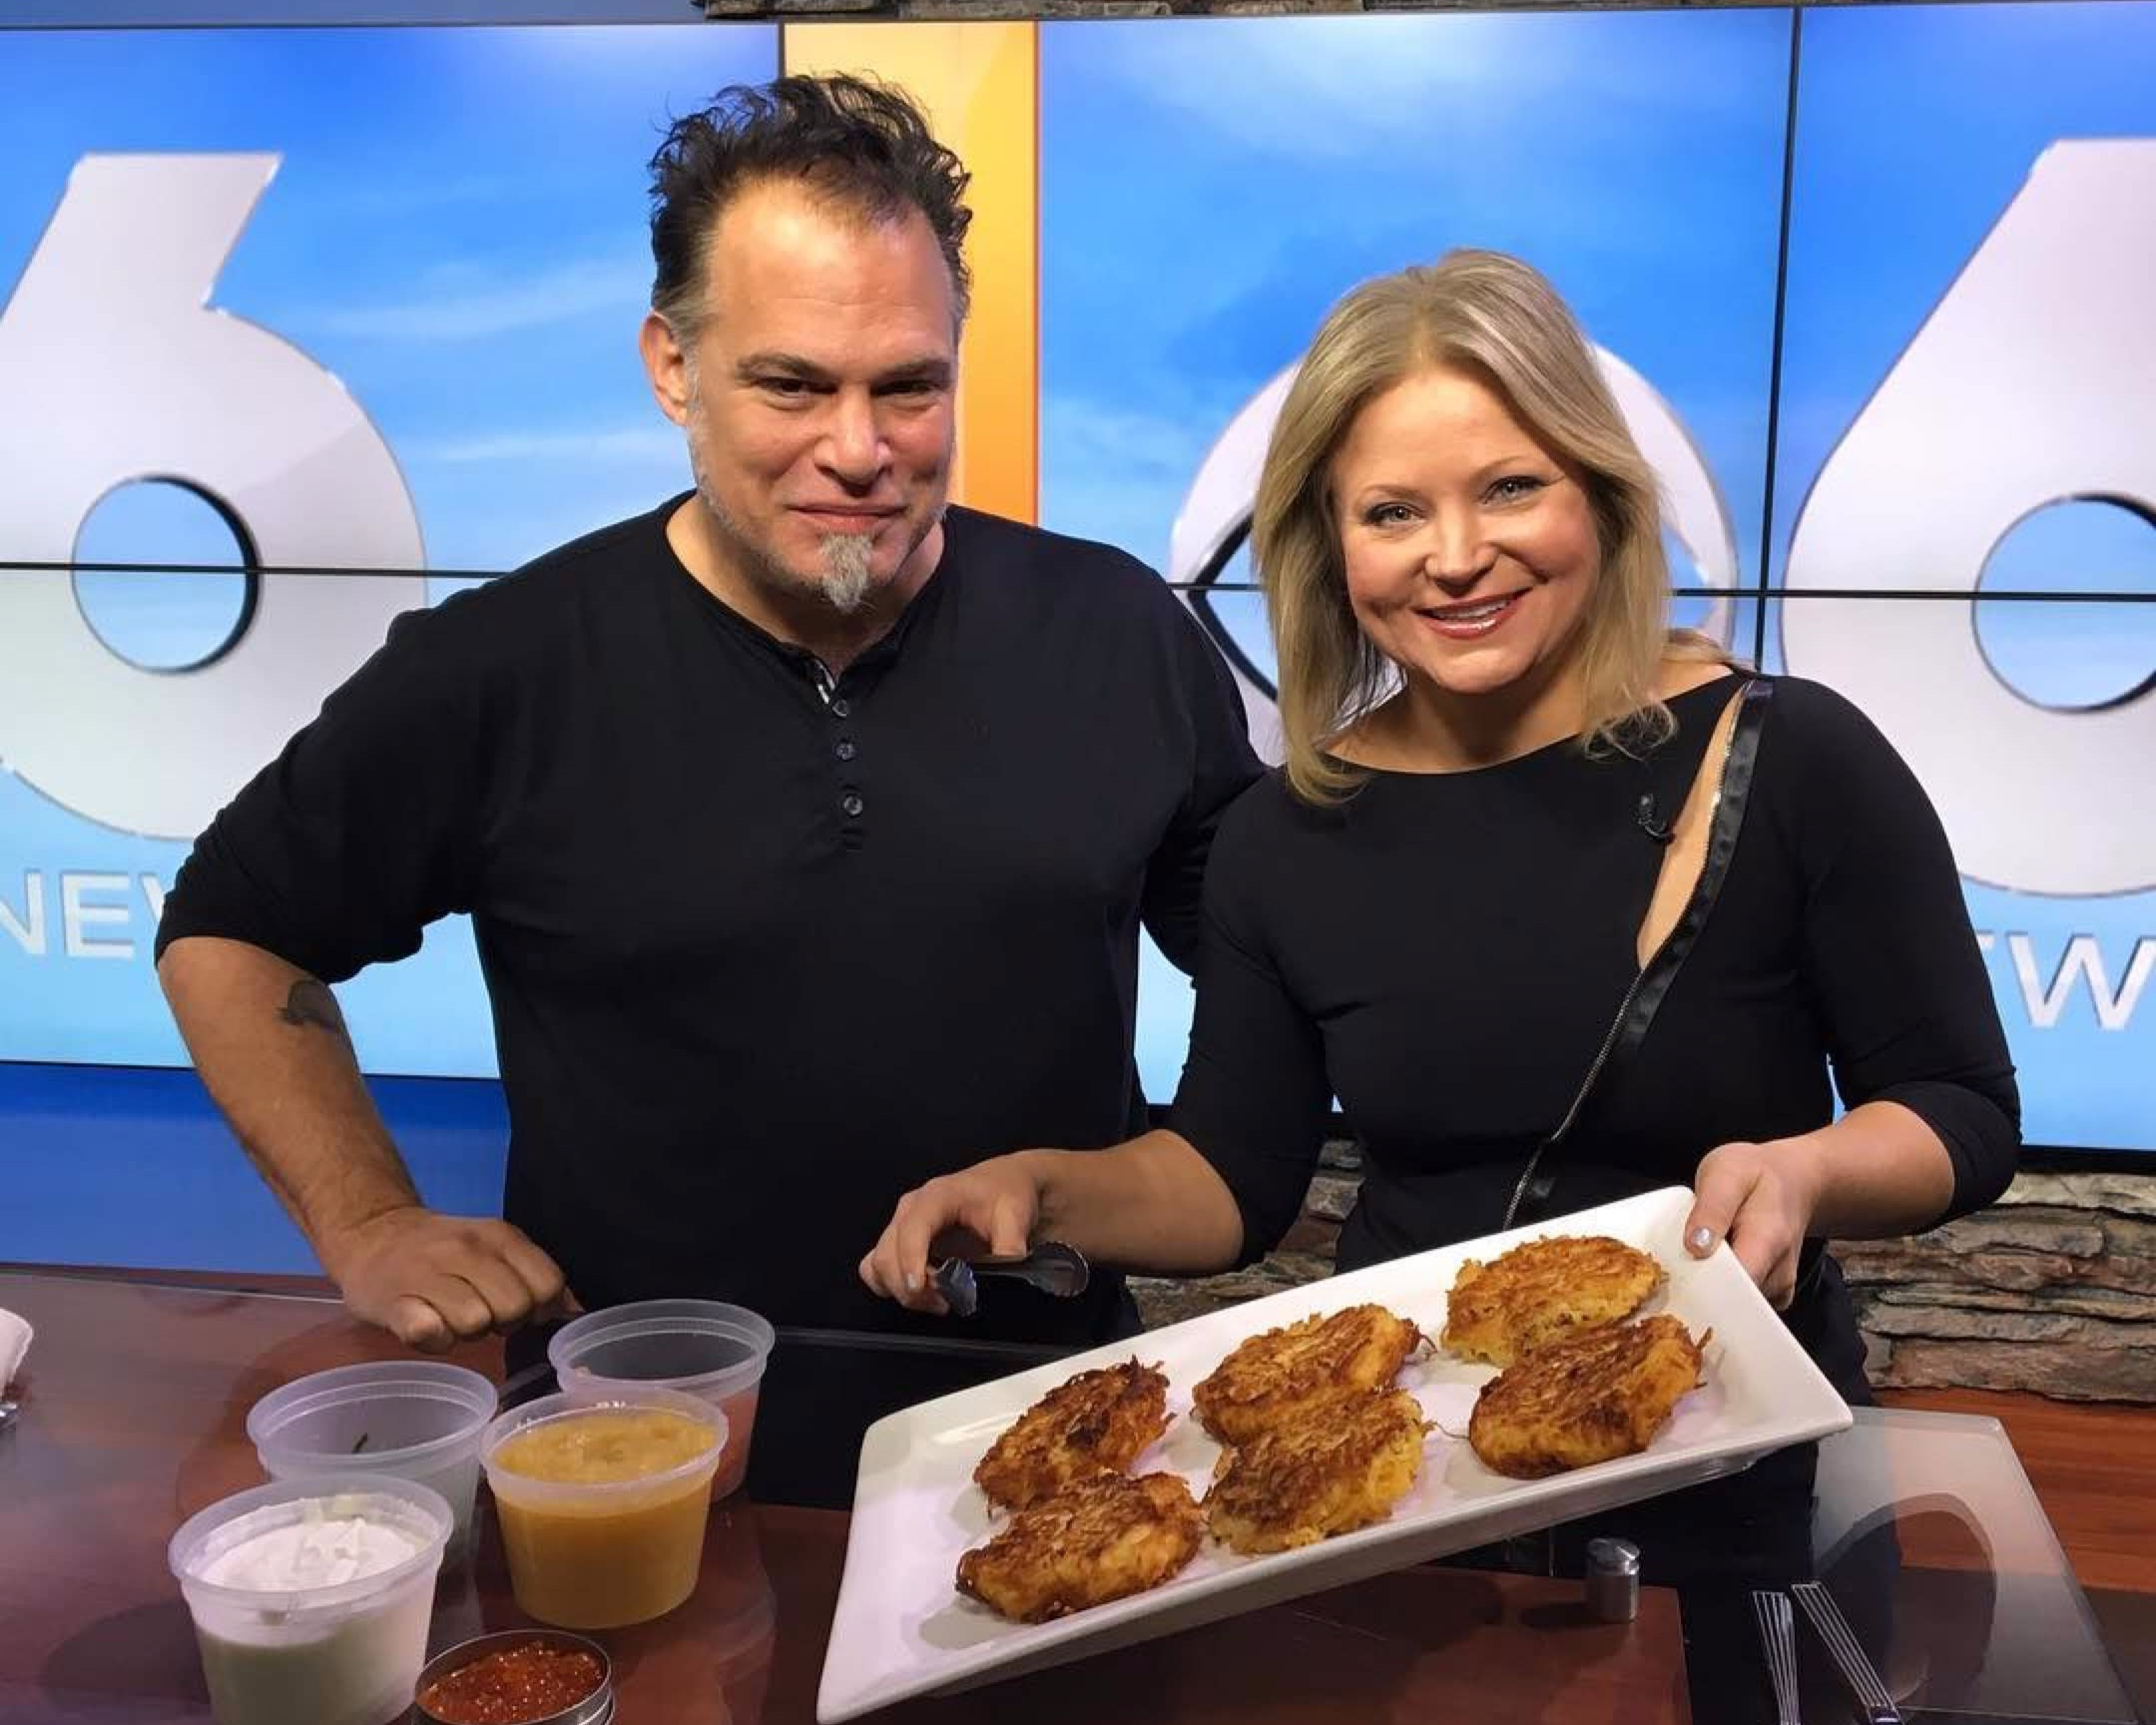 """On Channel 6 in Albany with Heather Kovar, showing off my latkes."" – Ric Orlando"